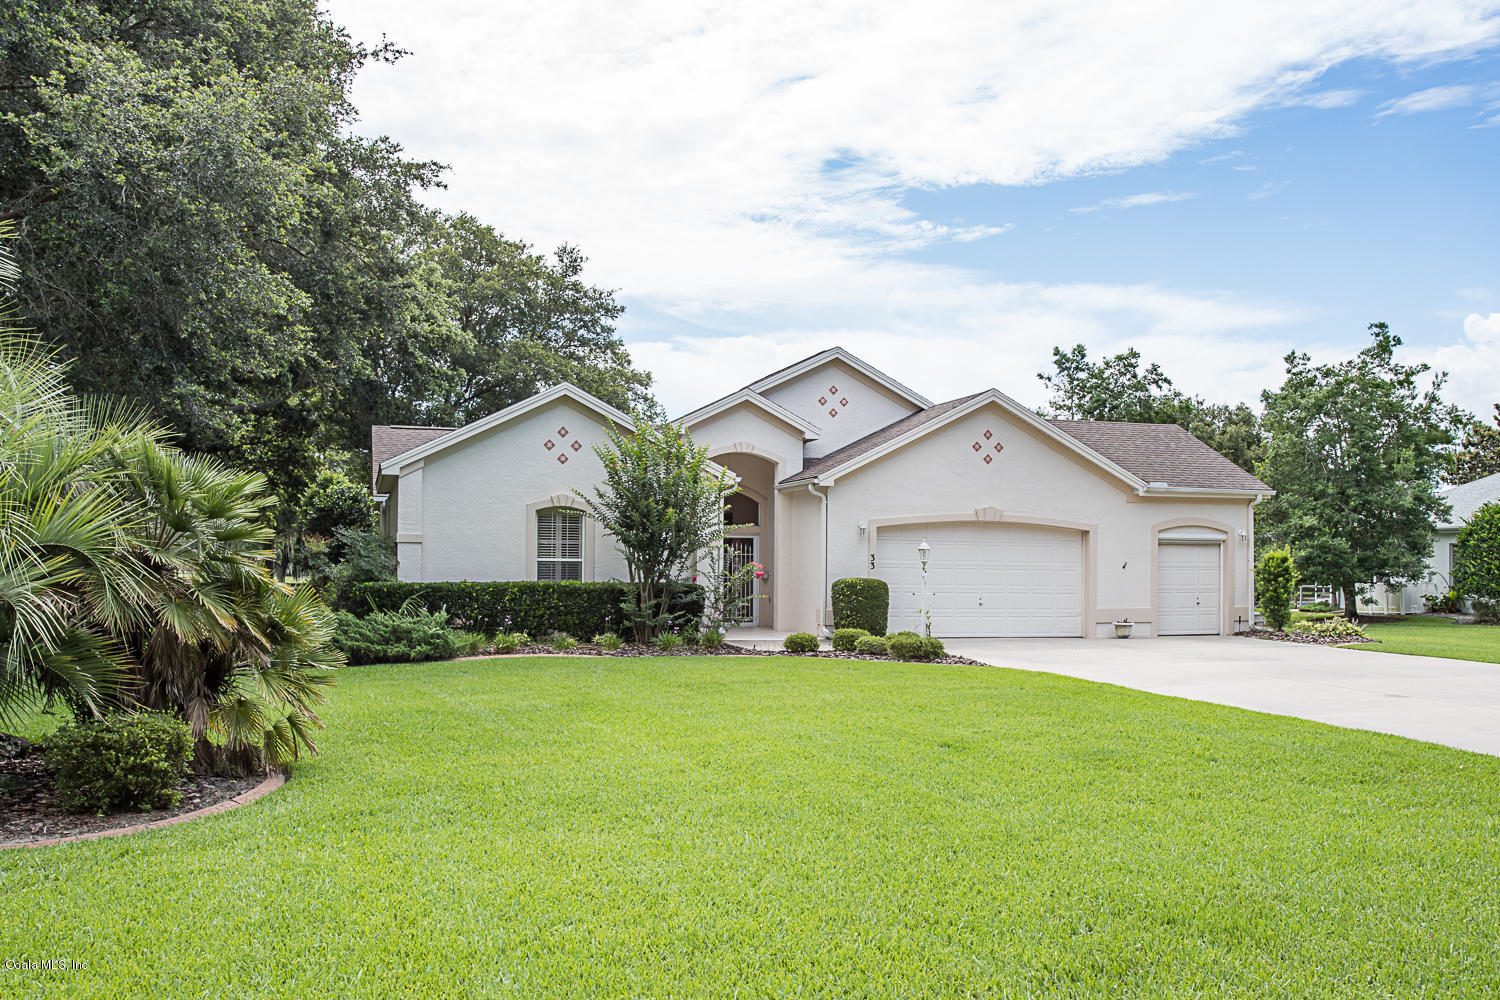 33 HICKORY HEAD HAMMOCK, THE VILLAGES, FL 32159